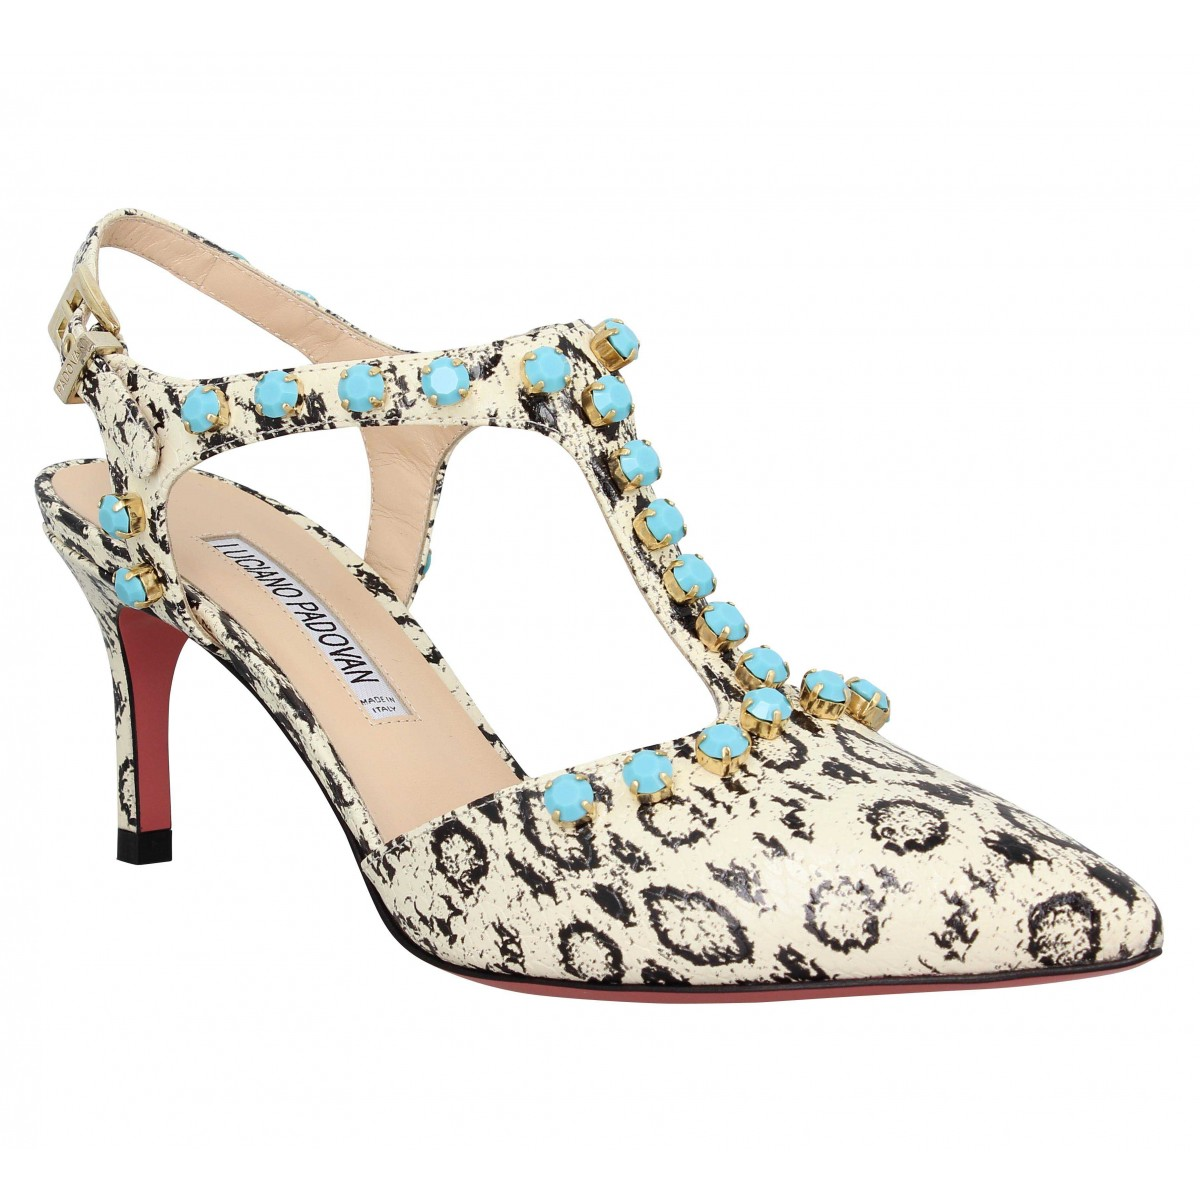 Sandales talons LUCIANO PADOVAN 938 python Femme Ivoire